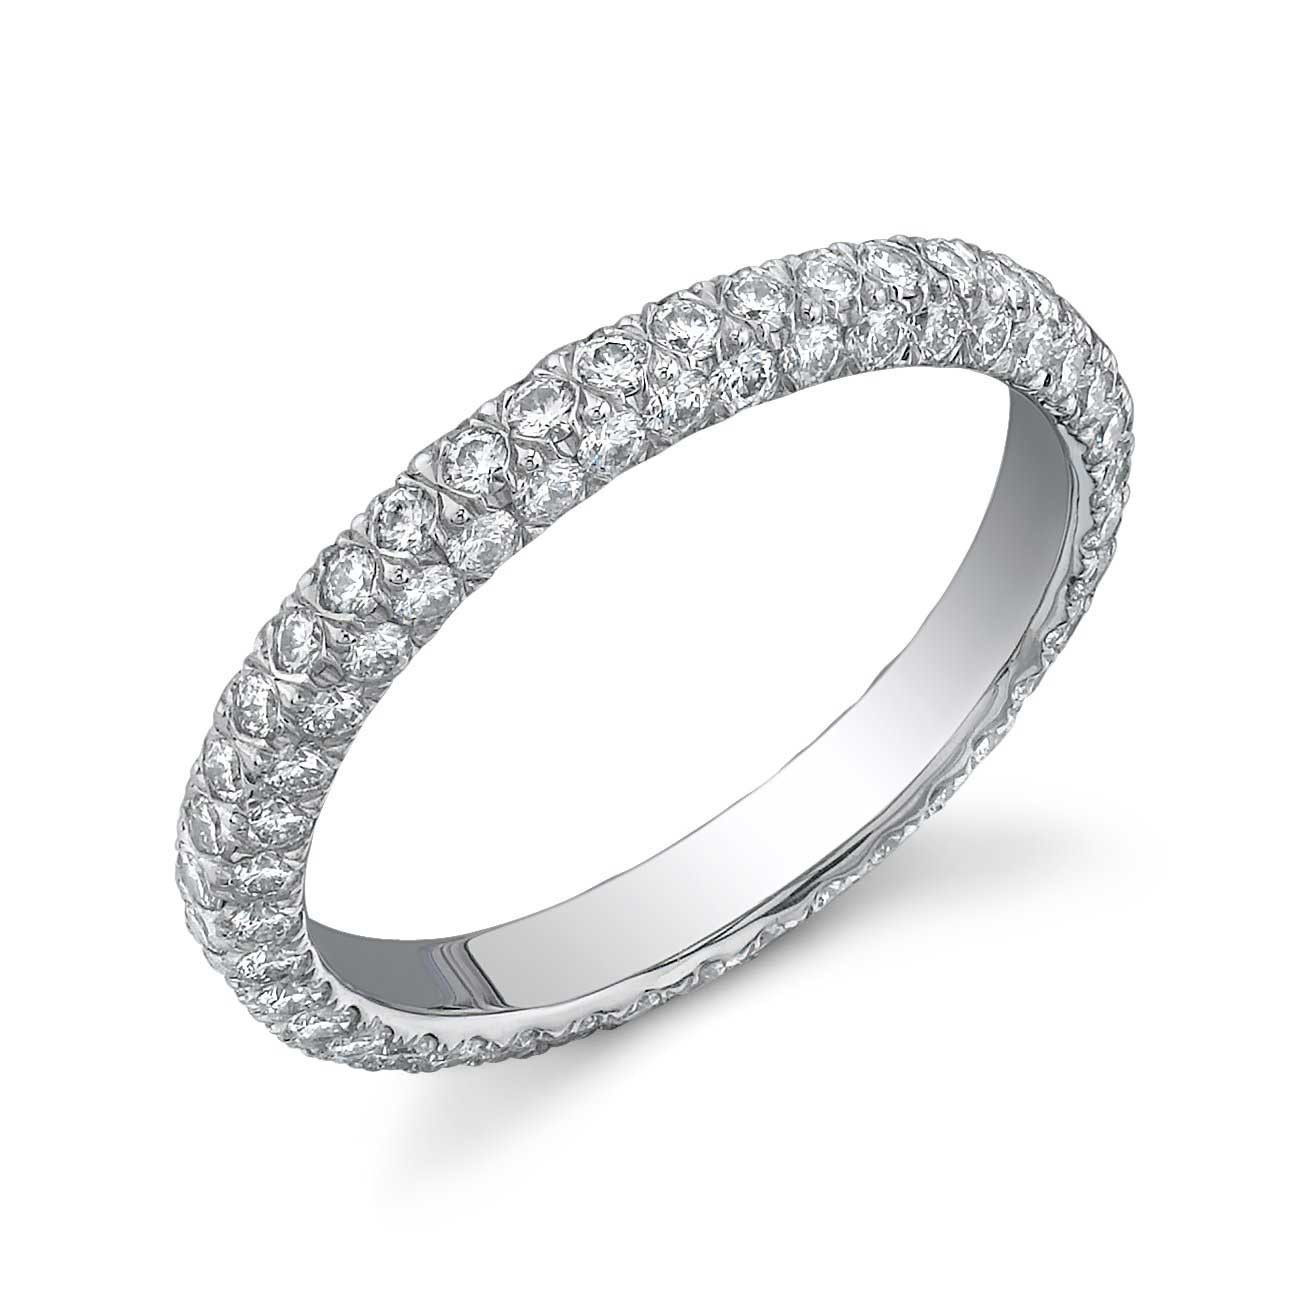 Custom three-sided pave' diamond eternity band